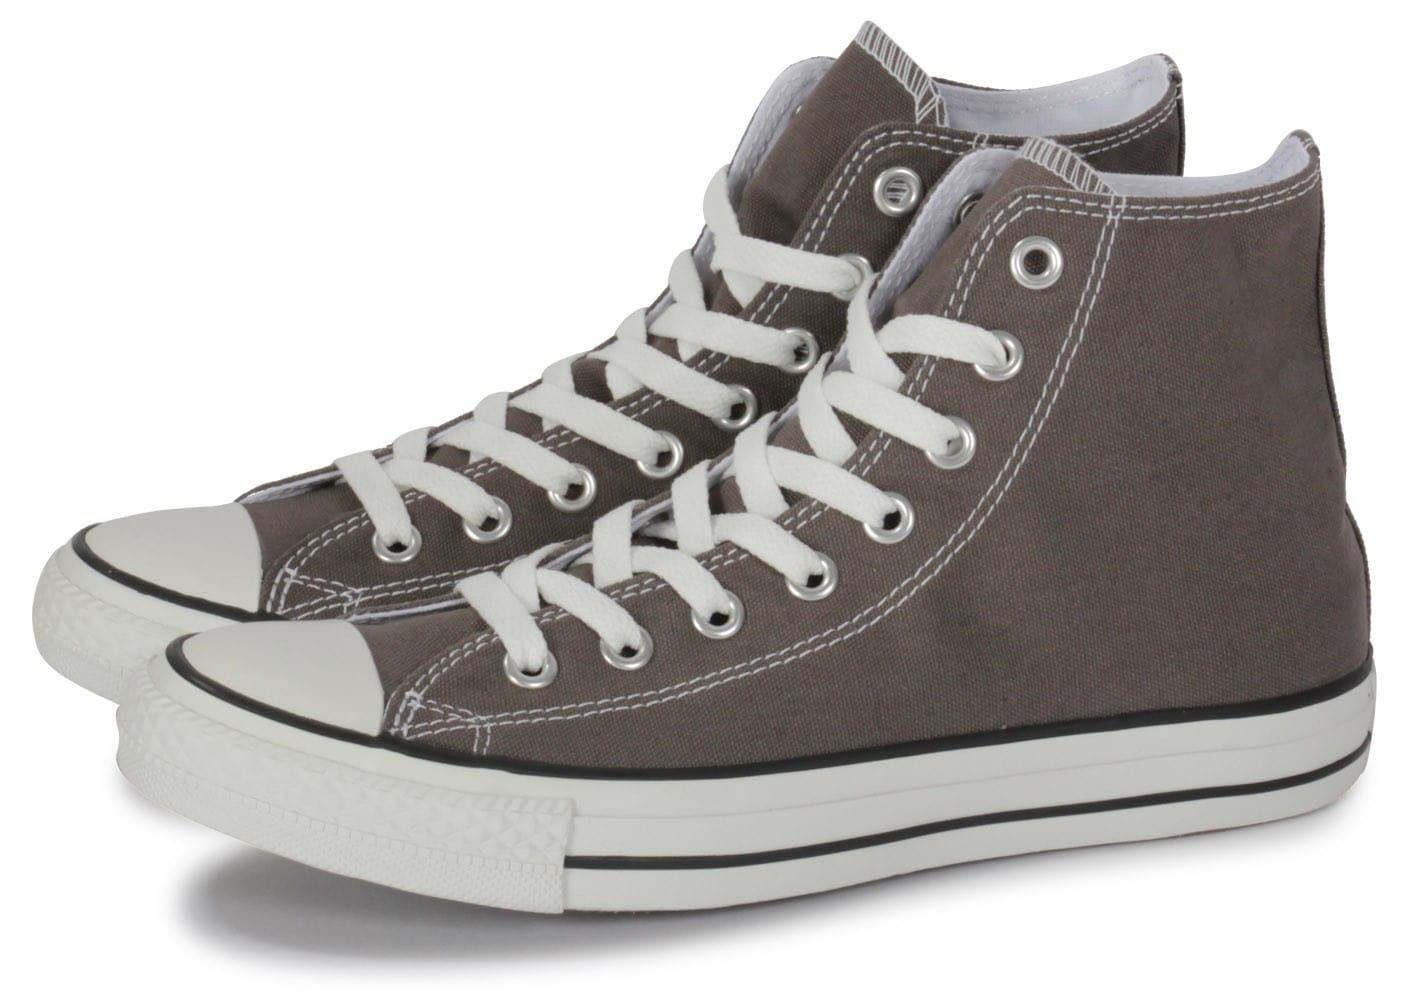 converse chuck taylor all star hi grise chaussures homme chausport. Black Bedroom Furniture Sets. Home Design Ideas